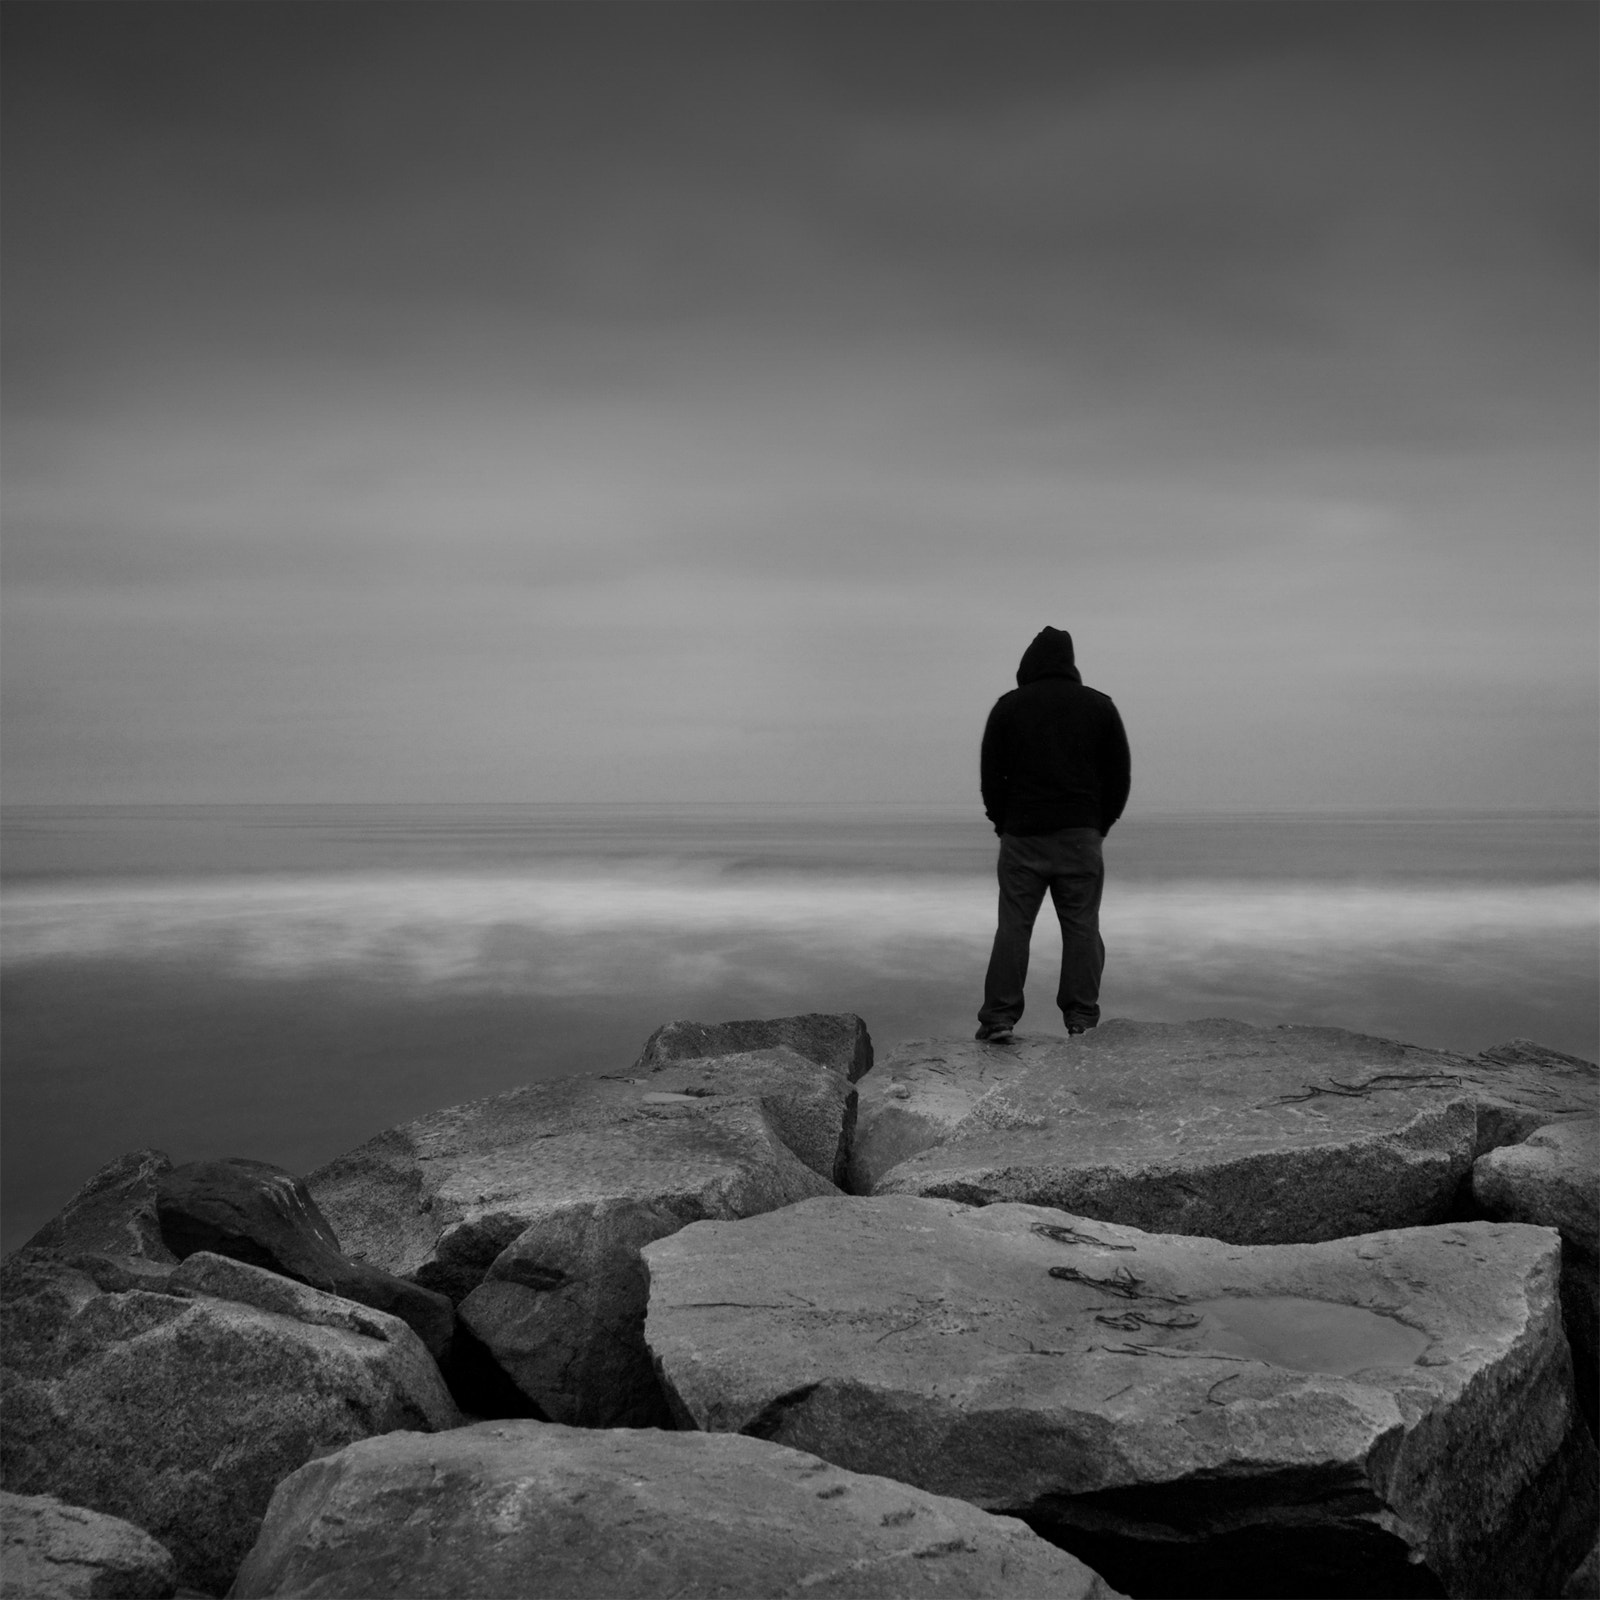 Photograph dreaming in staccato by Brian Day on 500px